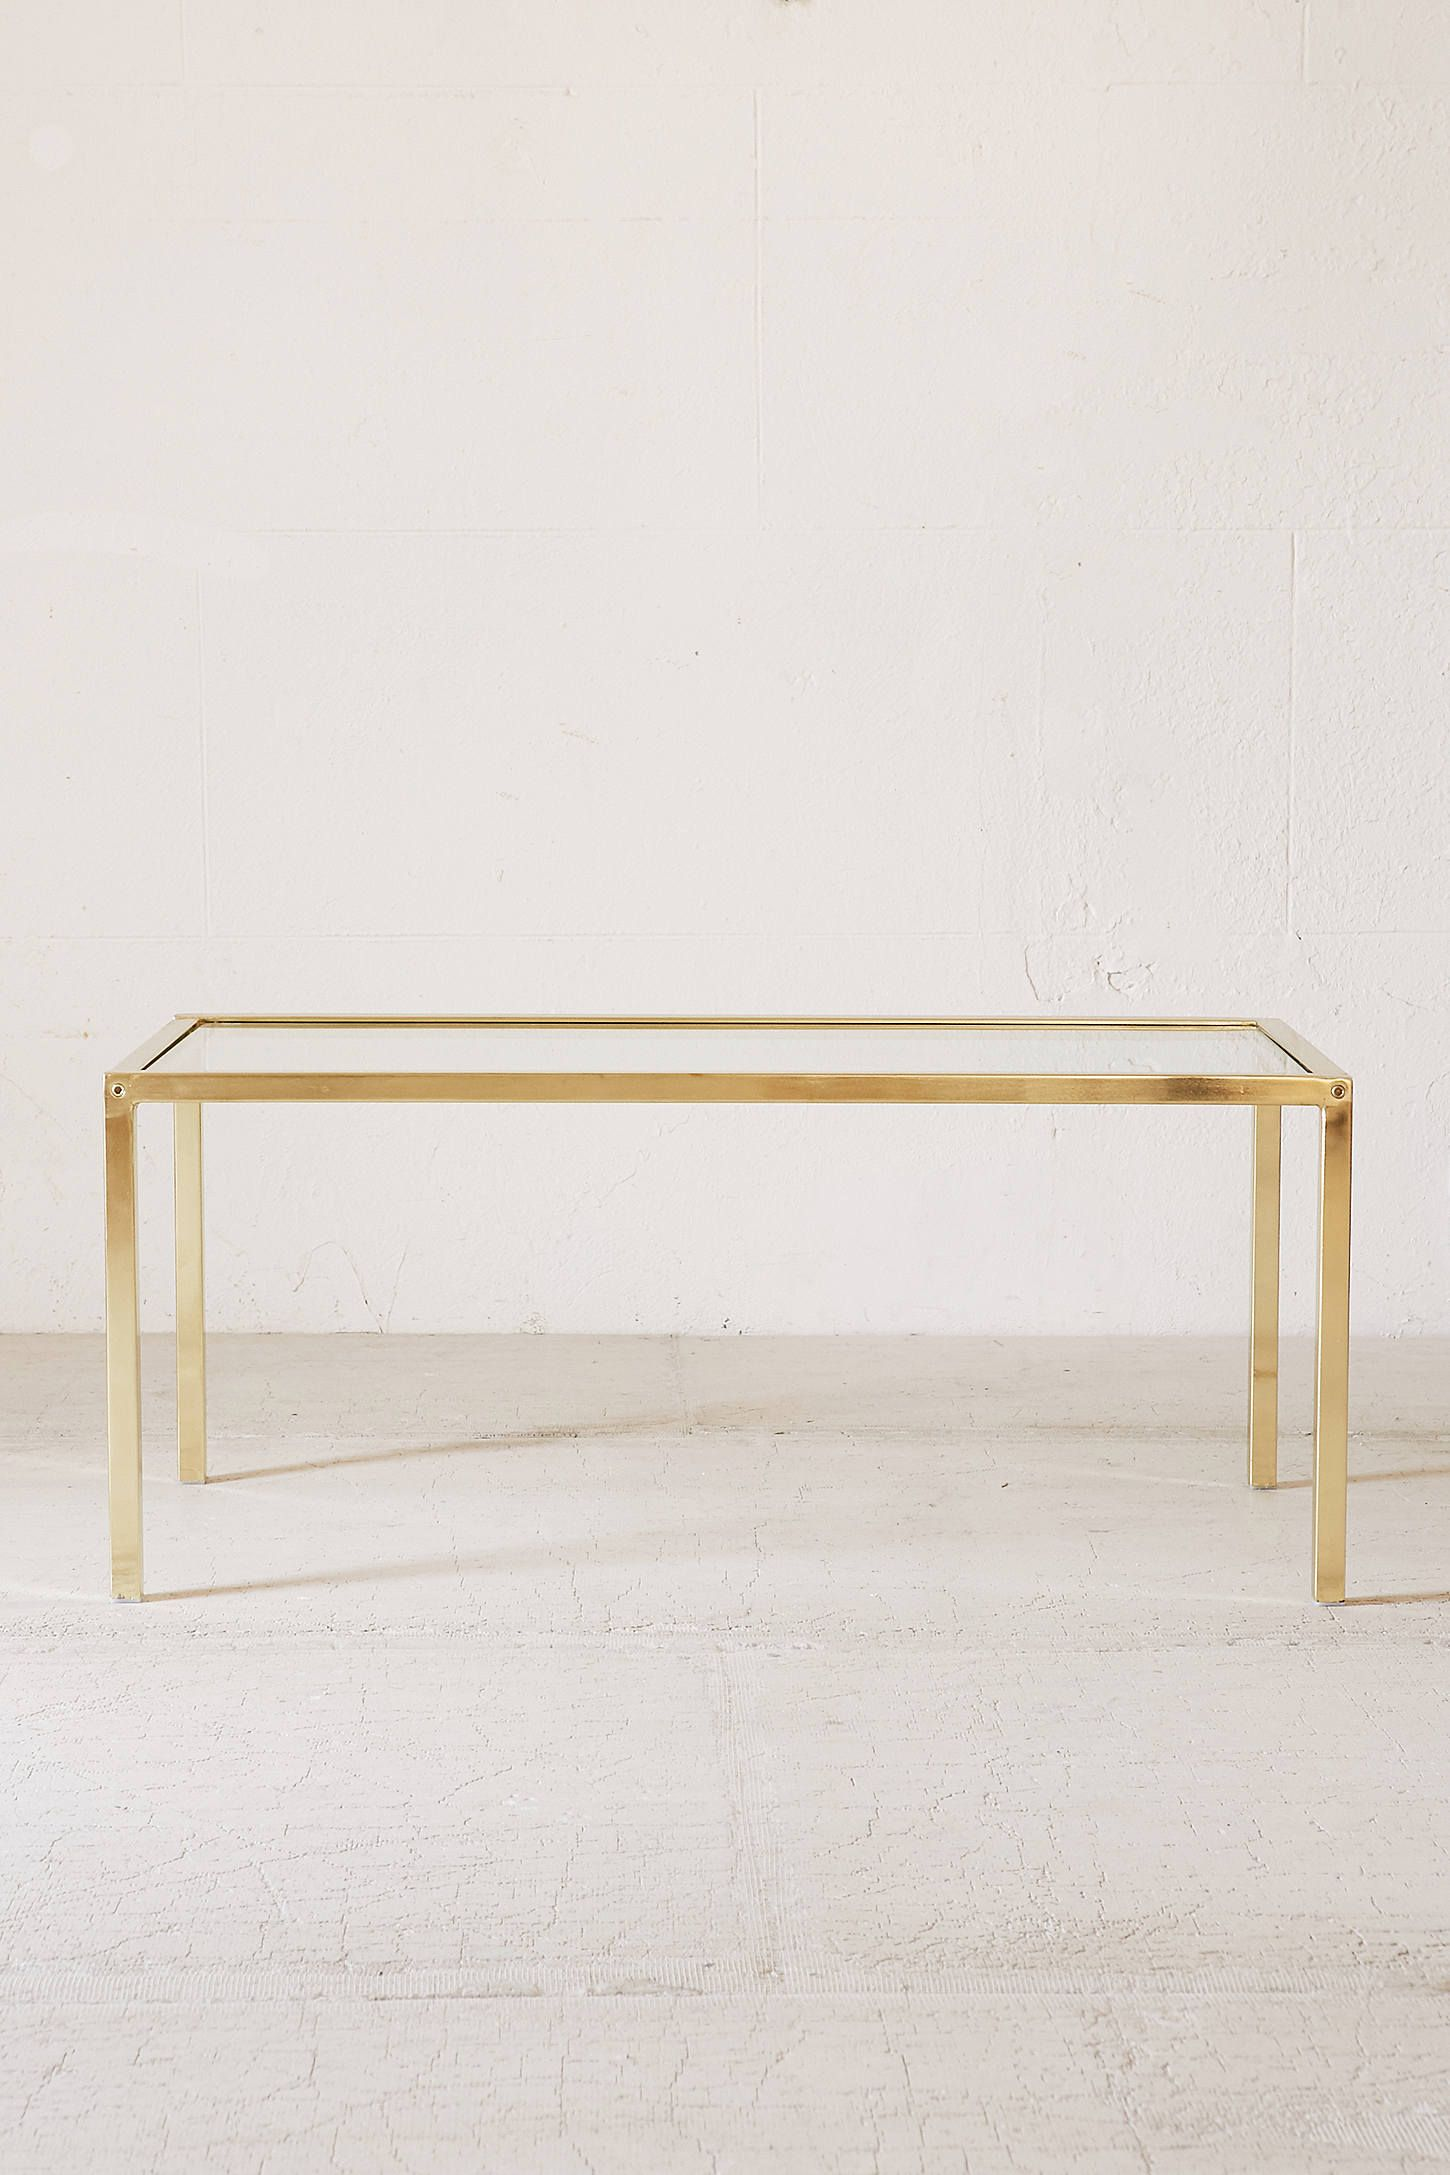 Pin On Design Home Accessories